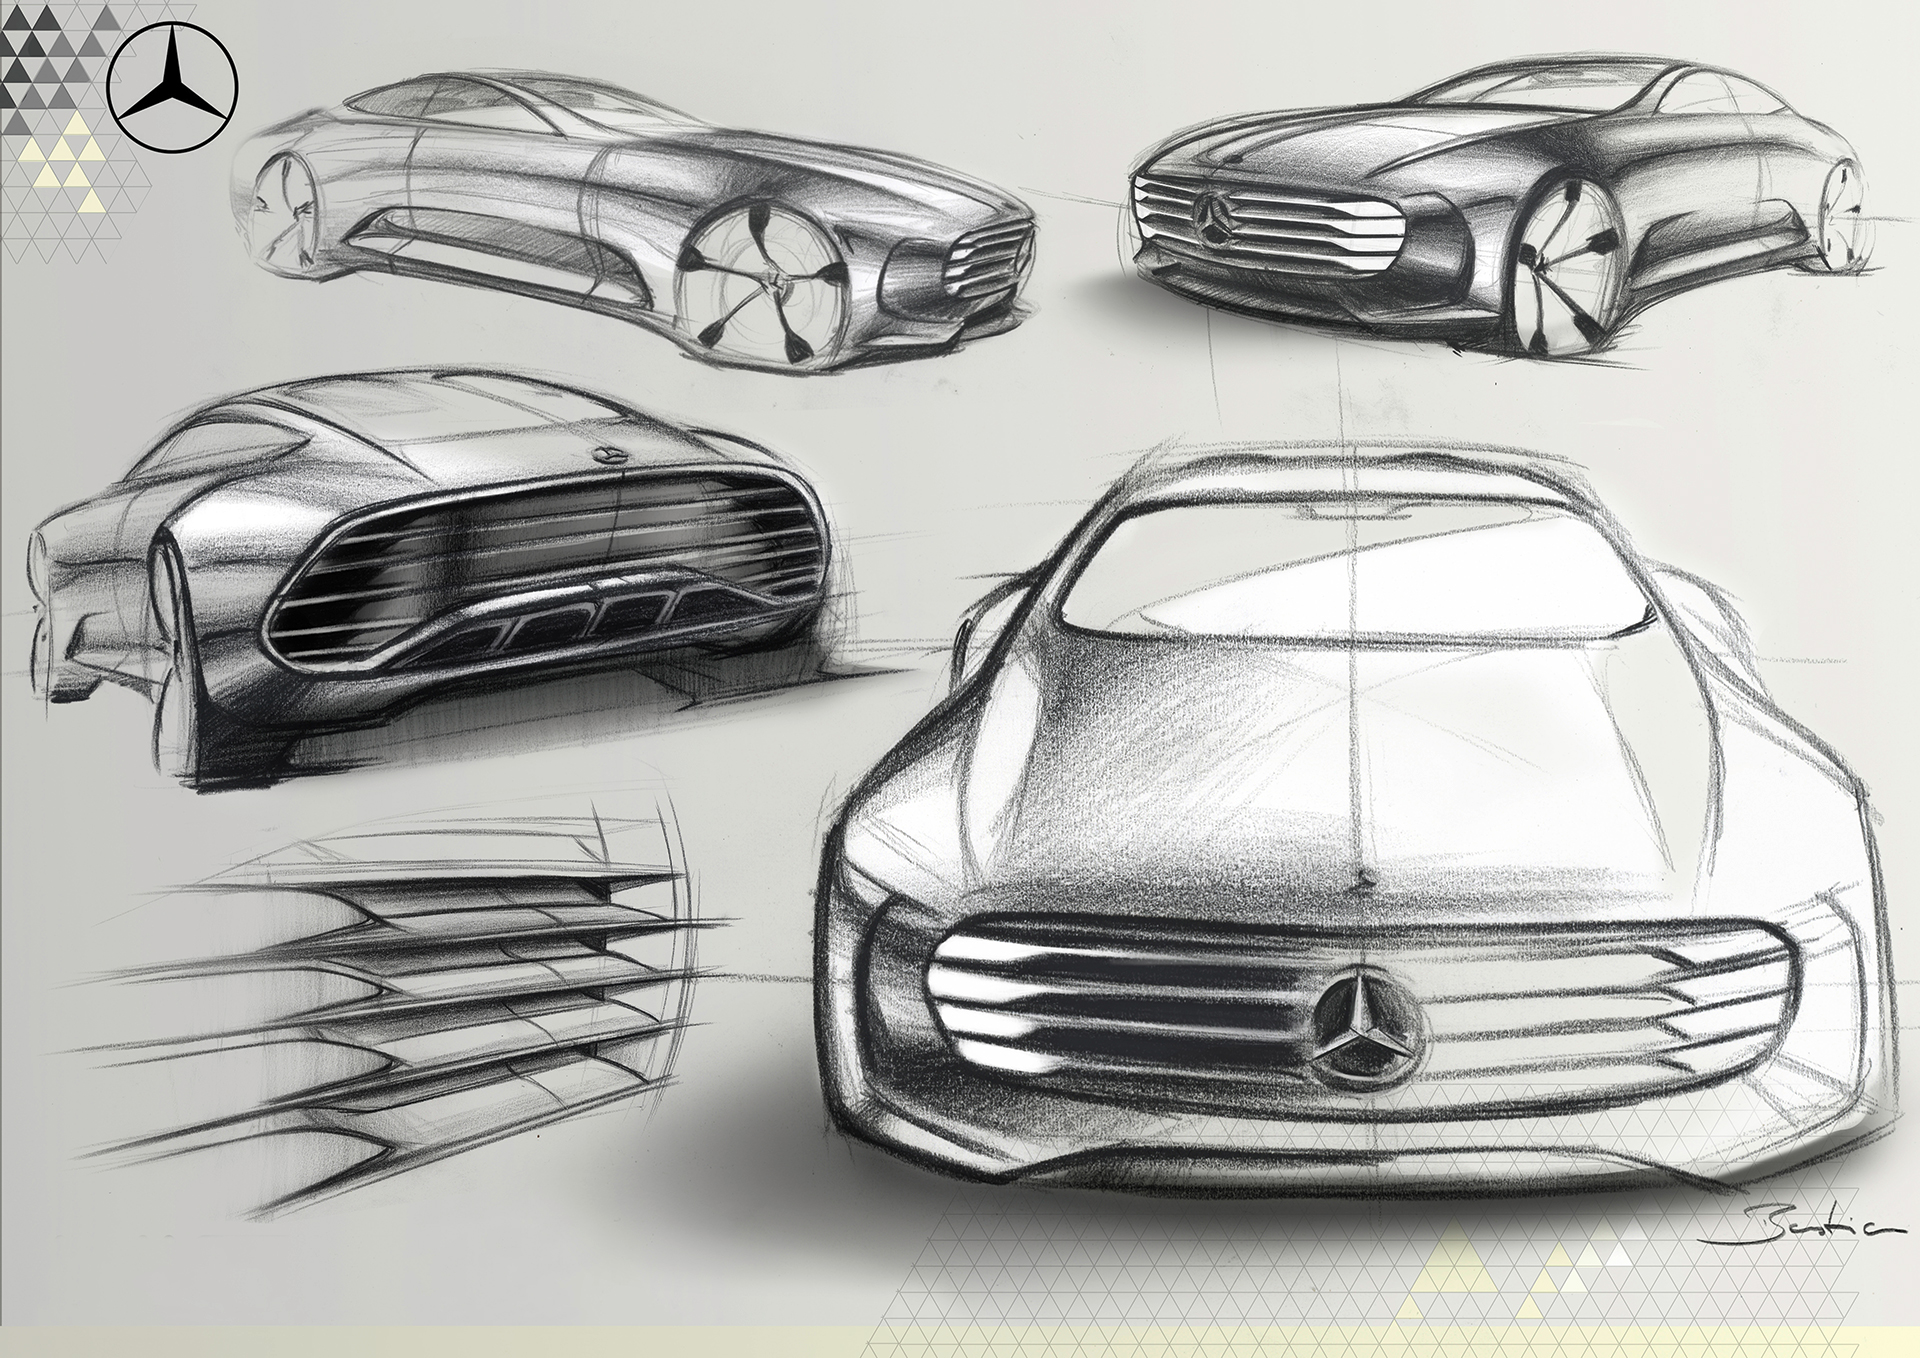 Mercedes-Benz Concept IAA - pencil sketch front design / dessin sketch design avant